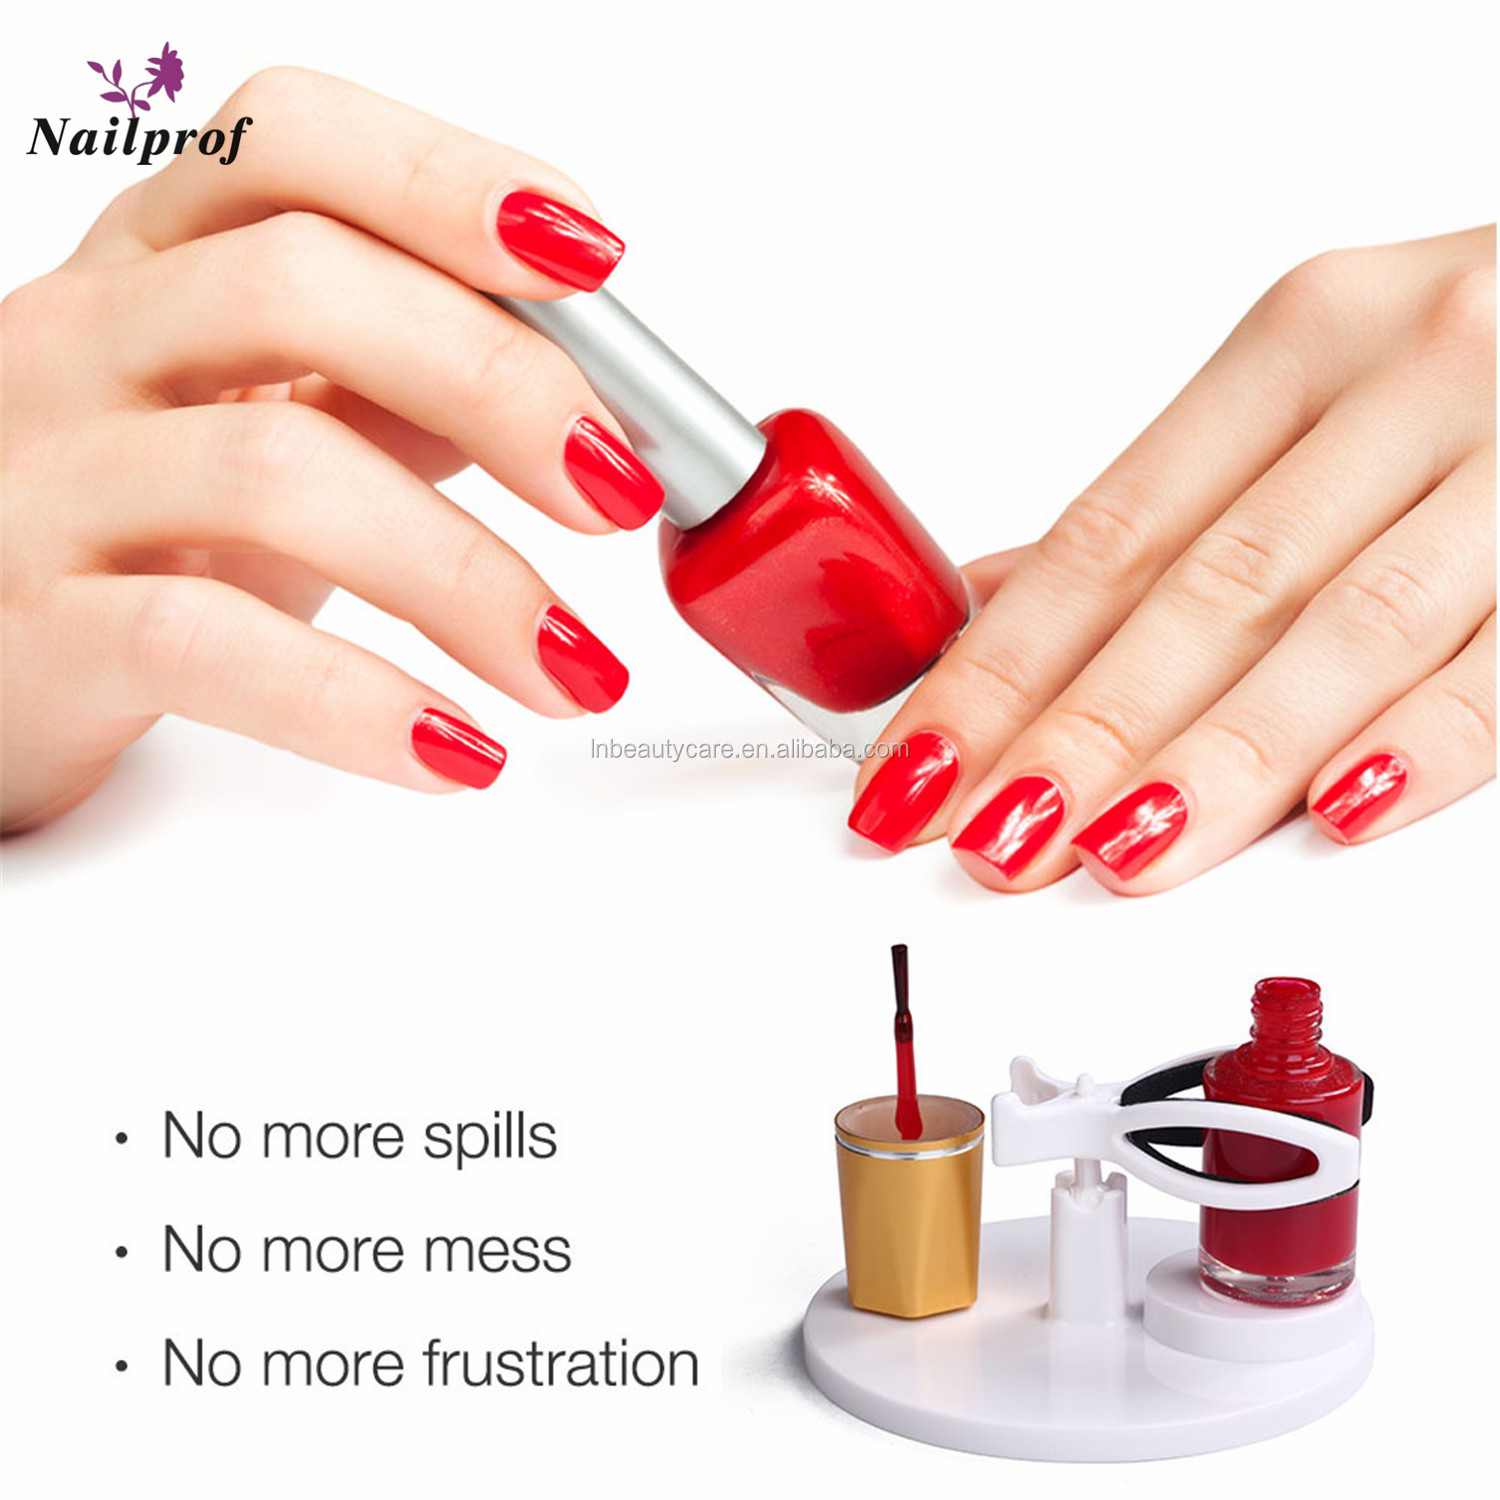 Nailprof. Hand Free Nail Polish Gel Bottle Holder Easy  Nail Varnish Stand Tilt Clip Grip Nail Polish Holder Tool